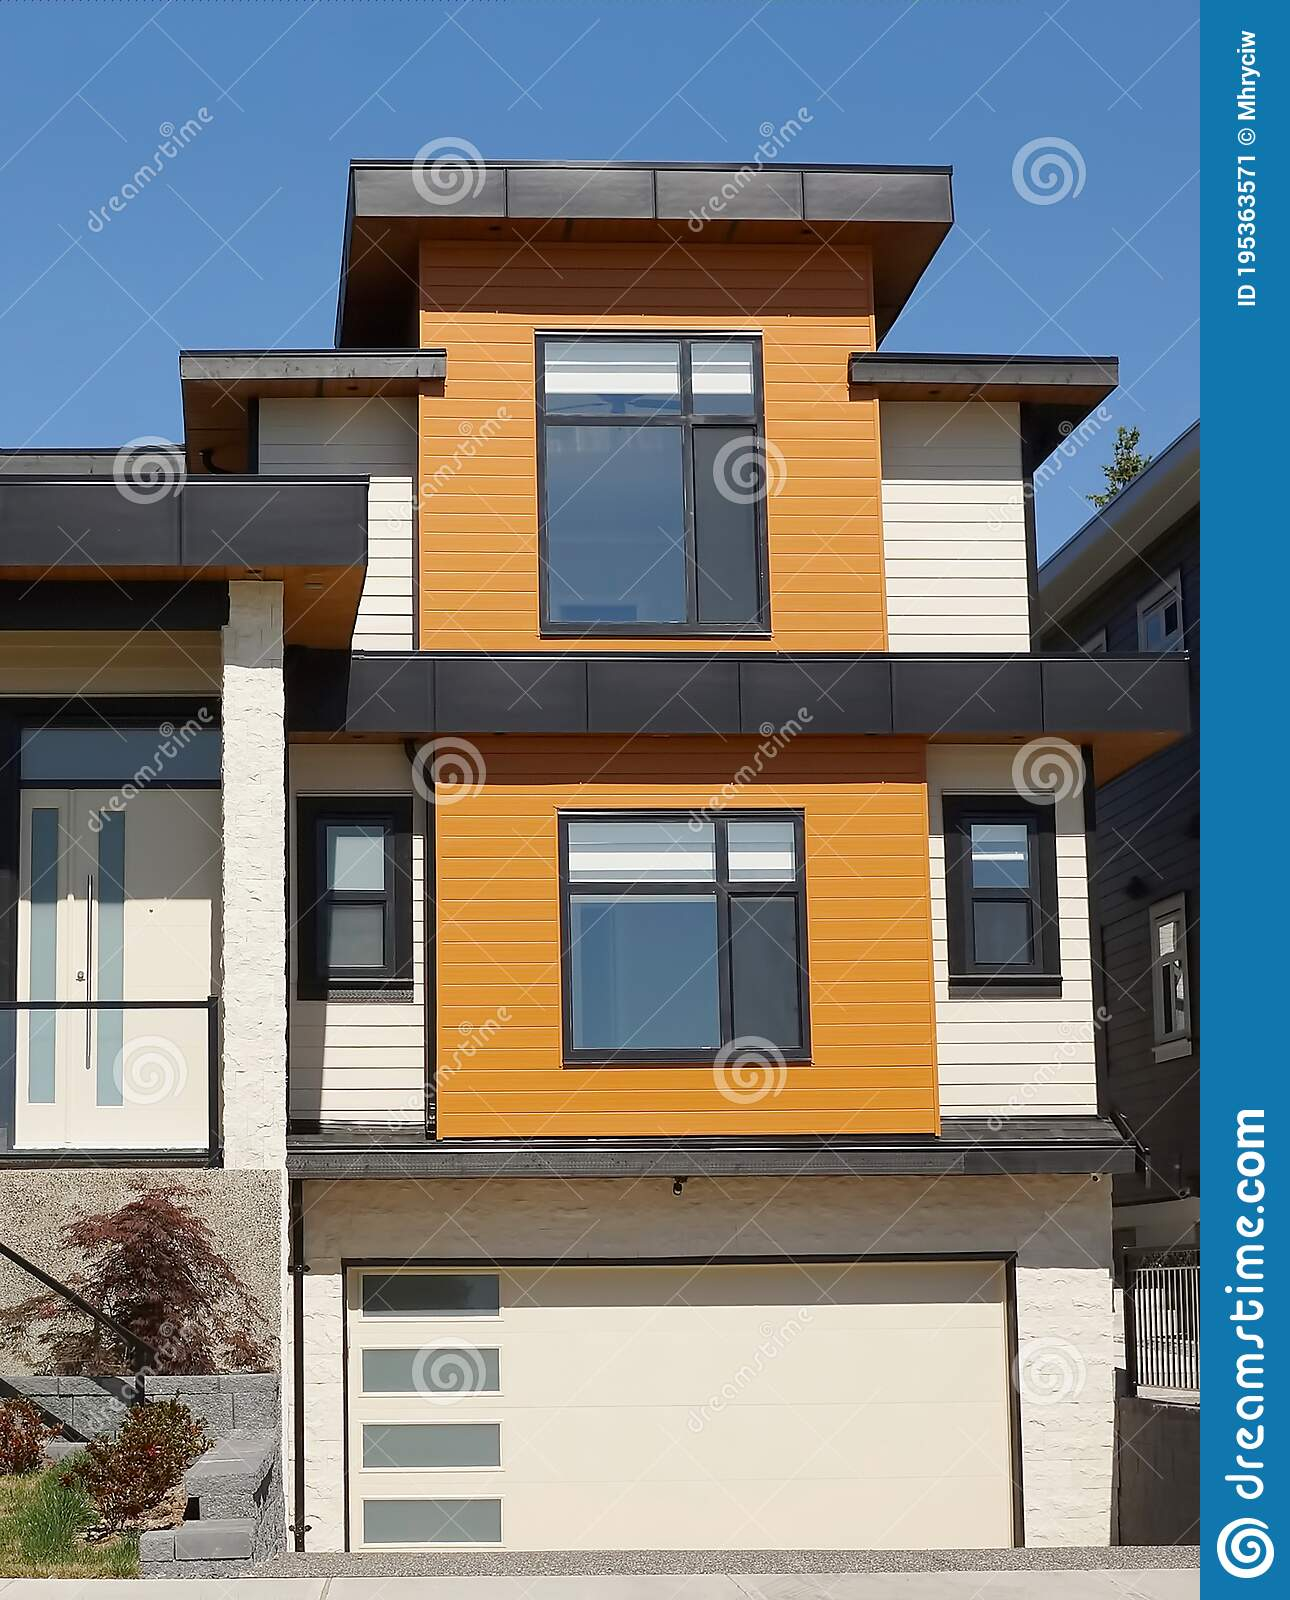 10 599 Flat Roof House Photos Free Royalty Free Stock Photos From Dreamstime